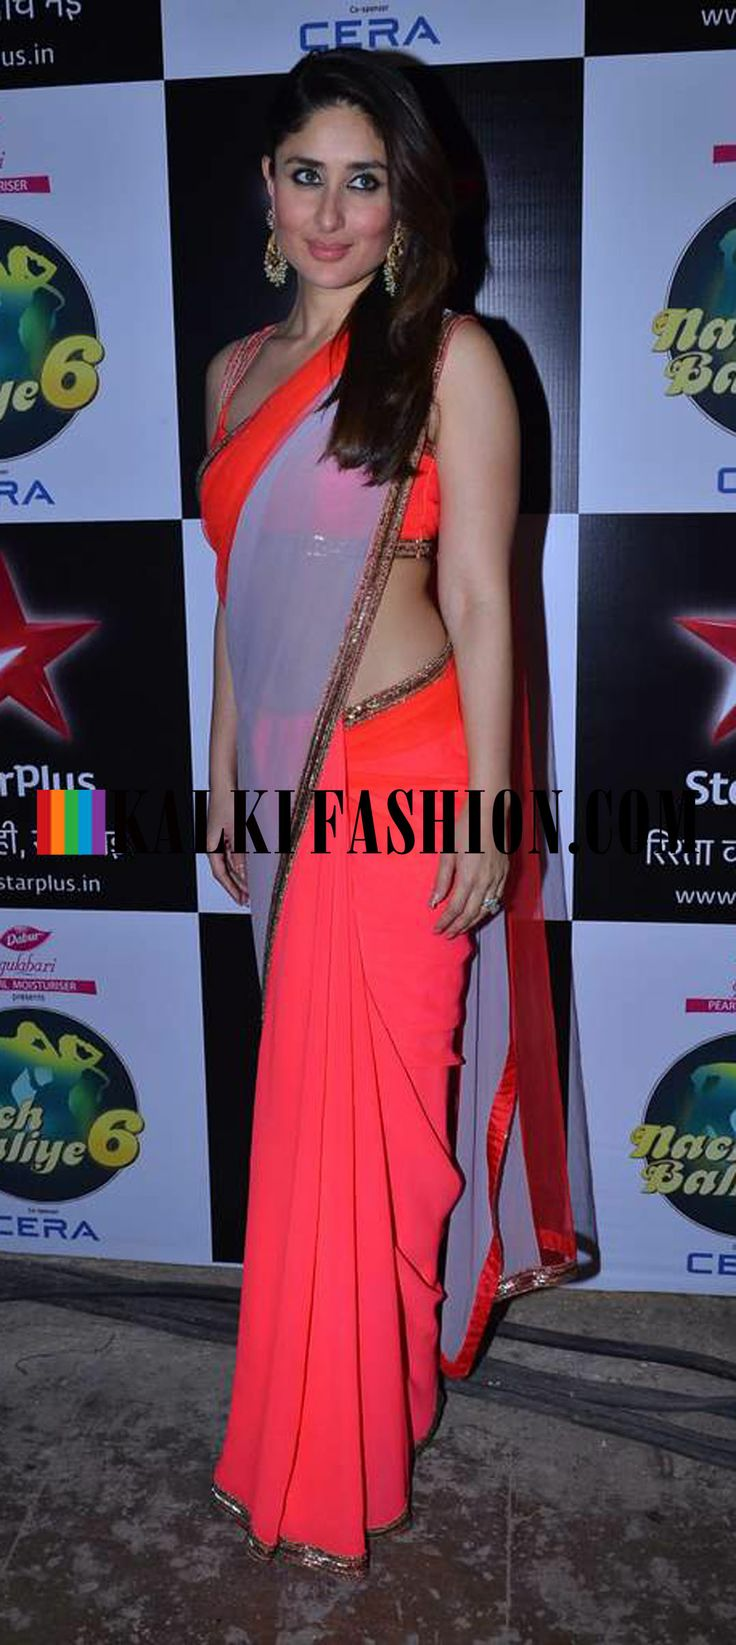 Nov, 13: Kareena Kapoor Khan looks stunning in her two tone Manish Malhotra Saree on the set of Nach Baliye 6 http://www.KalkiFashion.com/designers/manish-malhotra.html